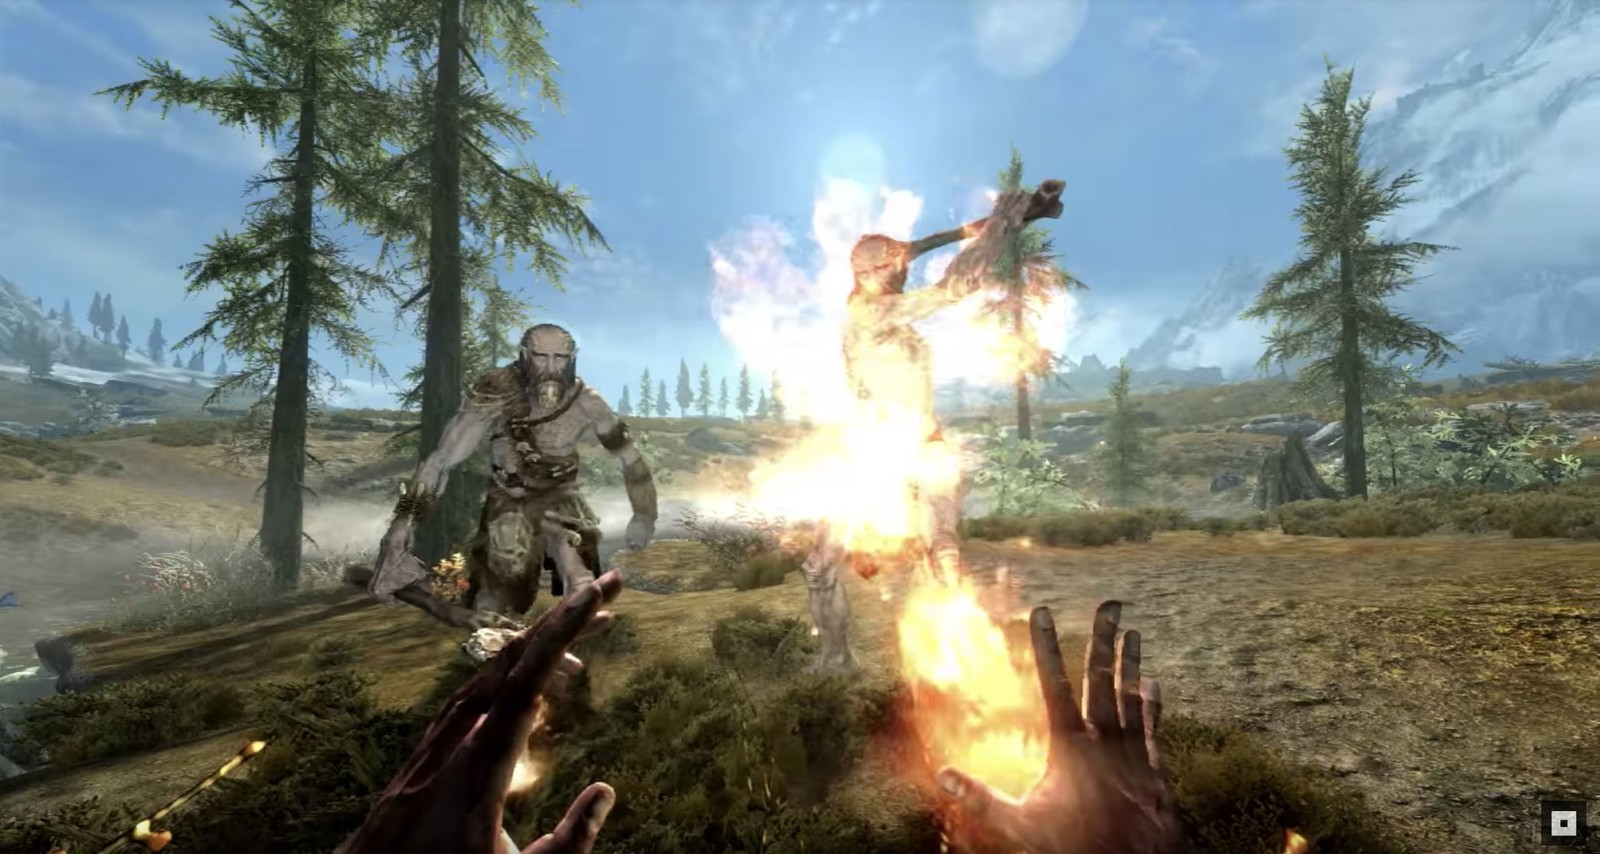 Skyrim VR in PSVR